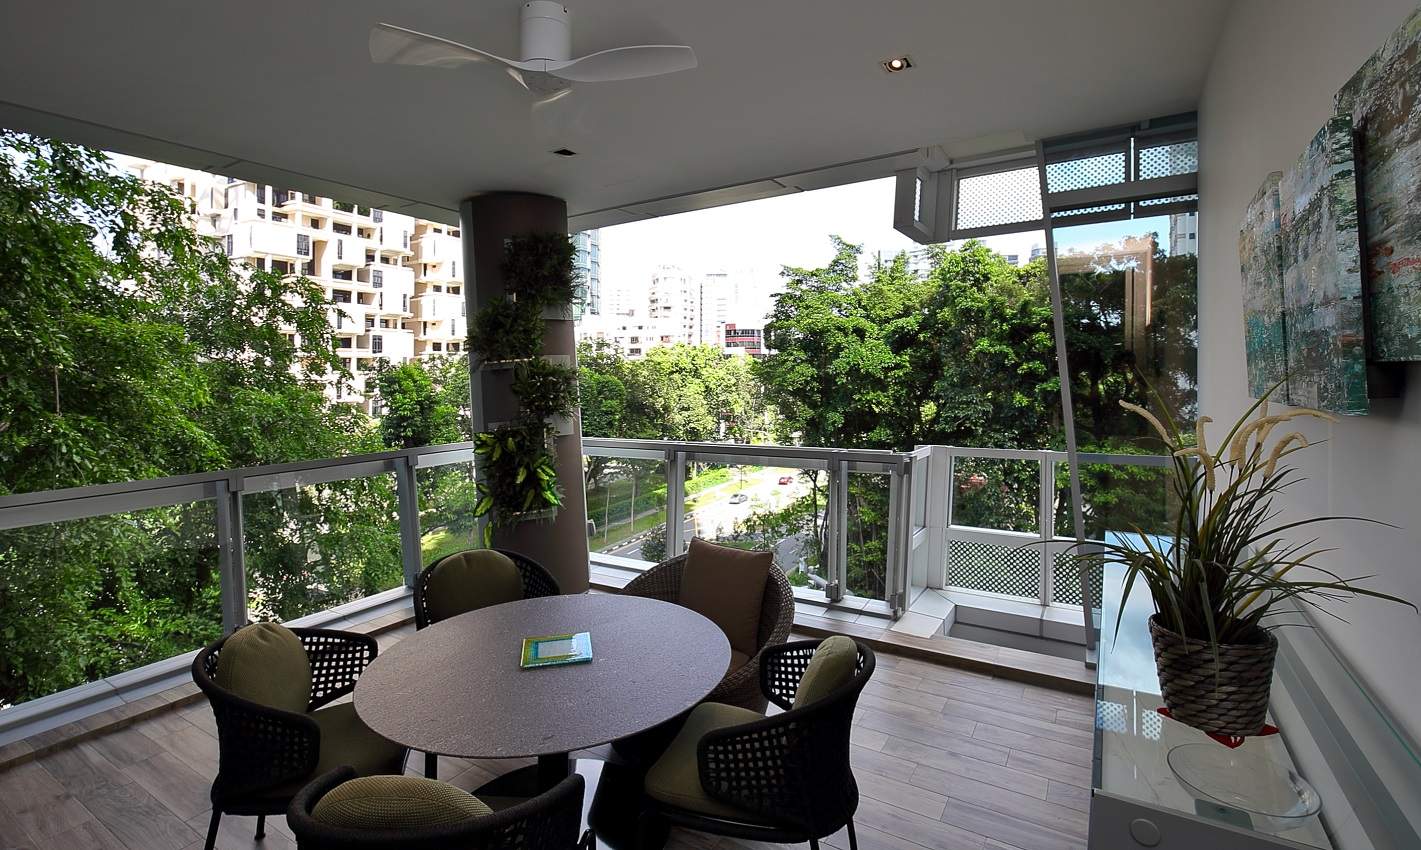 View of the trees from the balcony adjoining the living room (Photo: Samuel Isaac Chua/EdgeProp Singapore)